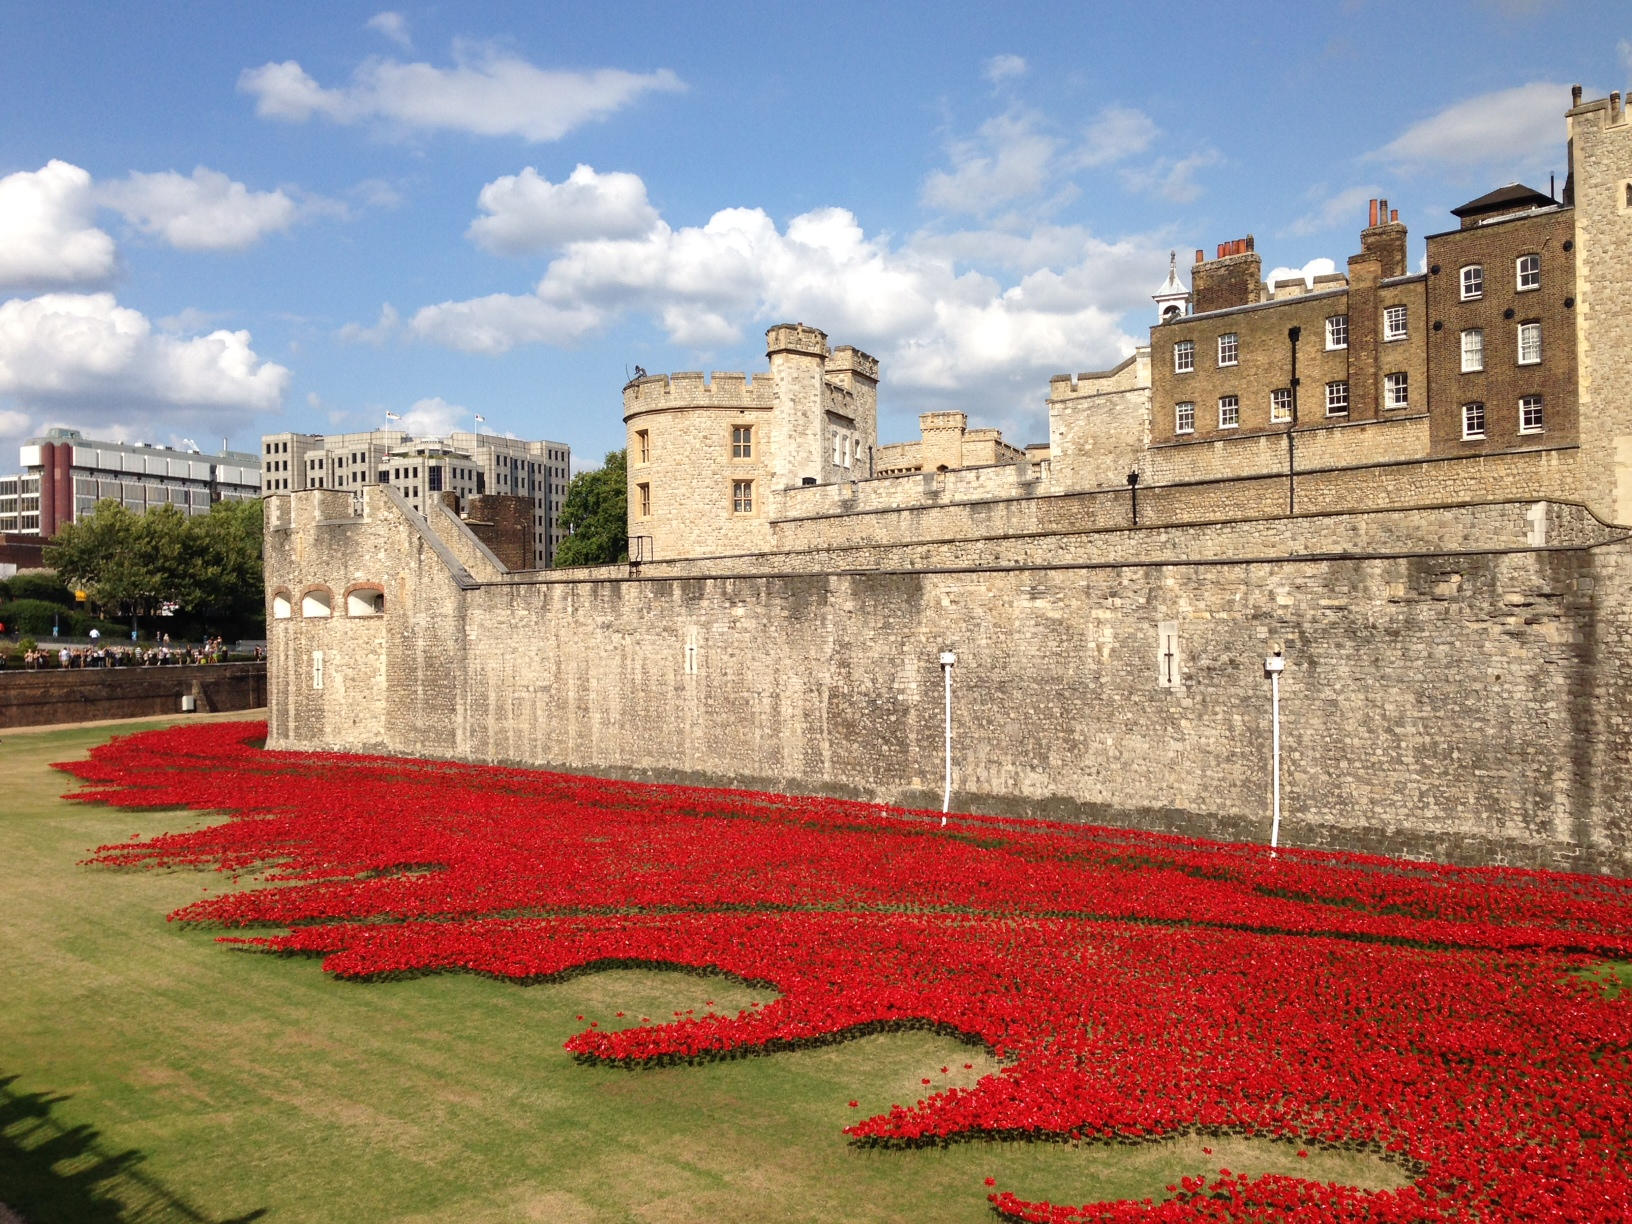 In commemoration of the 100th anniversary of the start of World War I, ceramic artist Paul Cummins created this  installation at the Tower of London , The sea of red is made up of individual ceramic poppies.